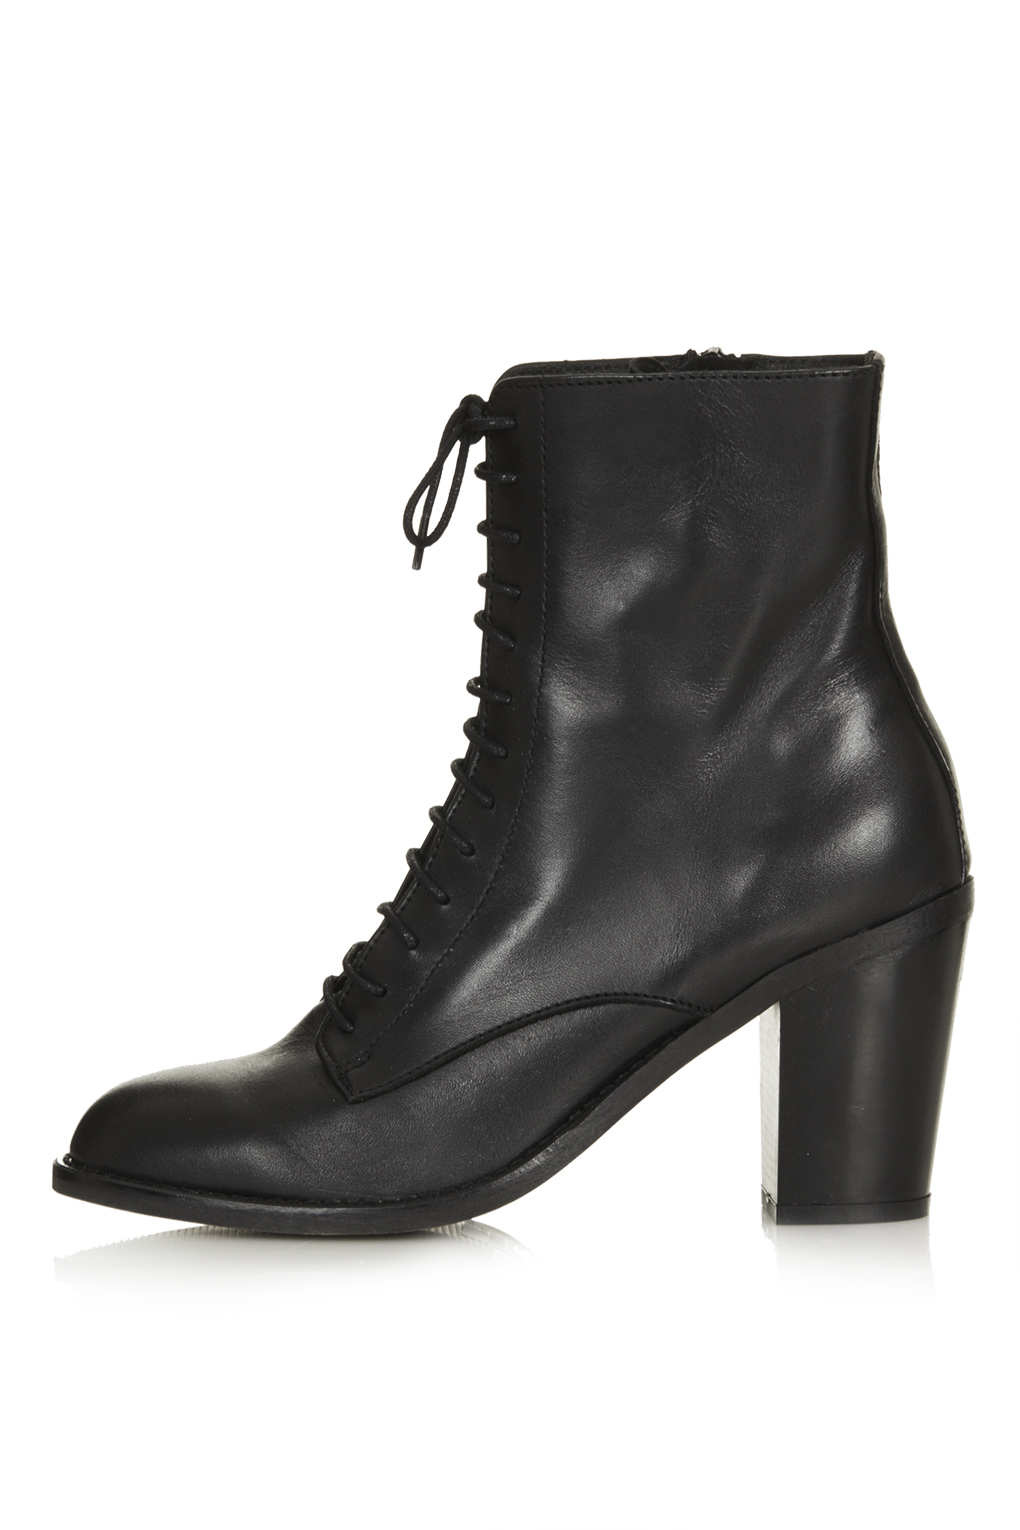 Lyst  Topshop Abra Lace Up Witch Boots in Black